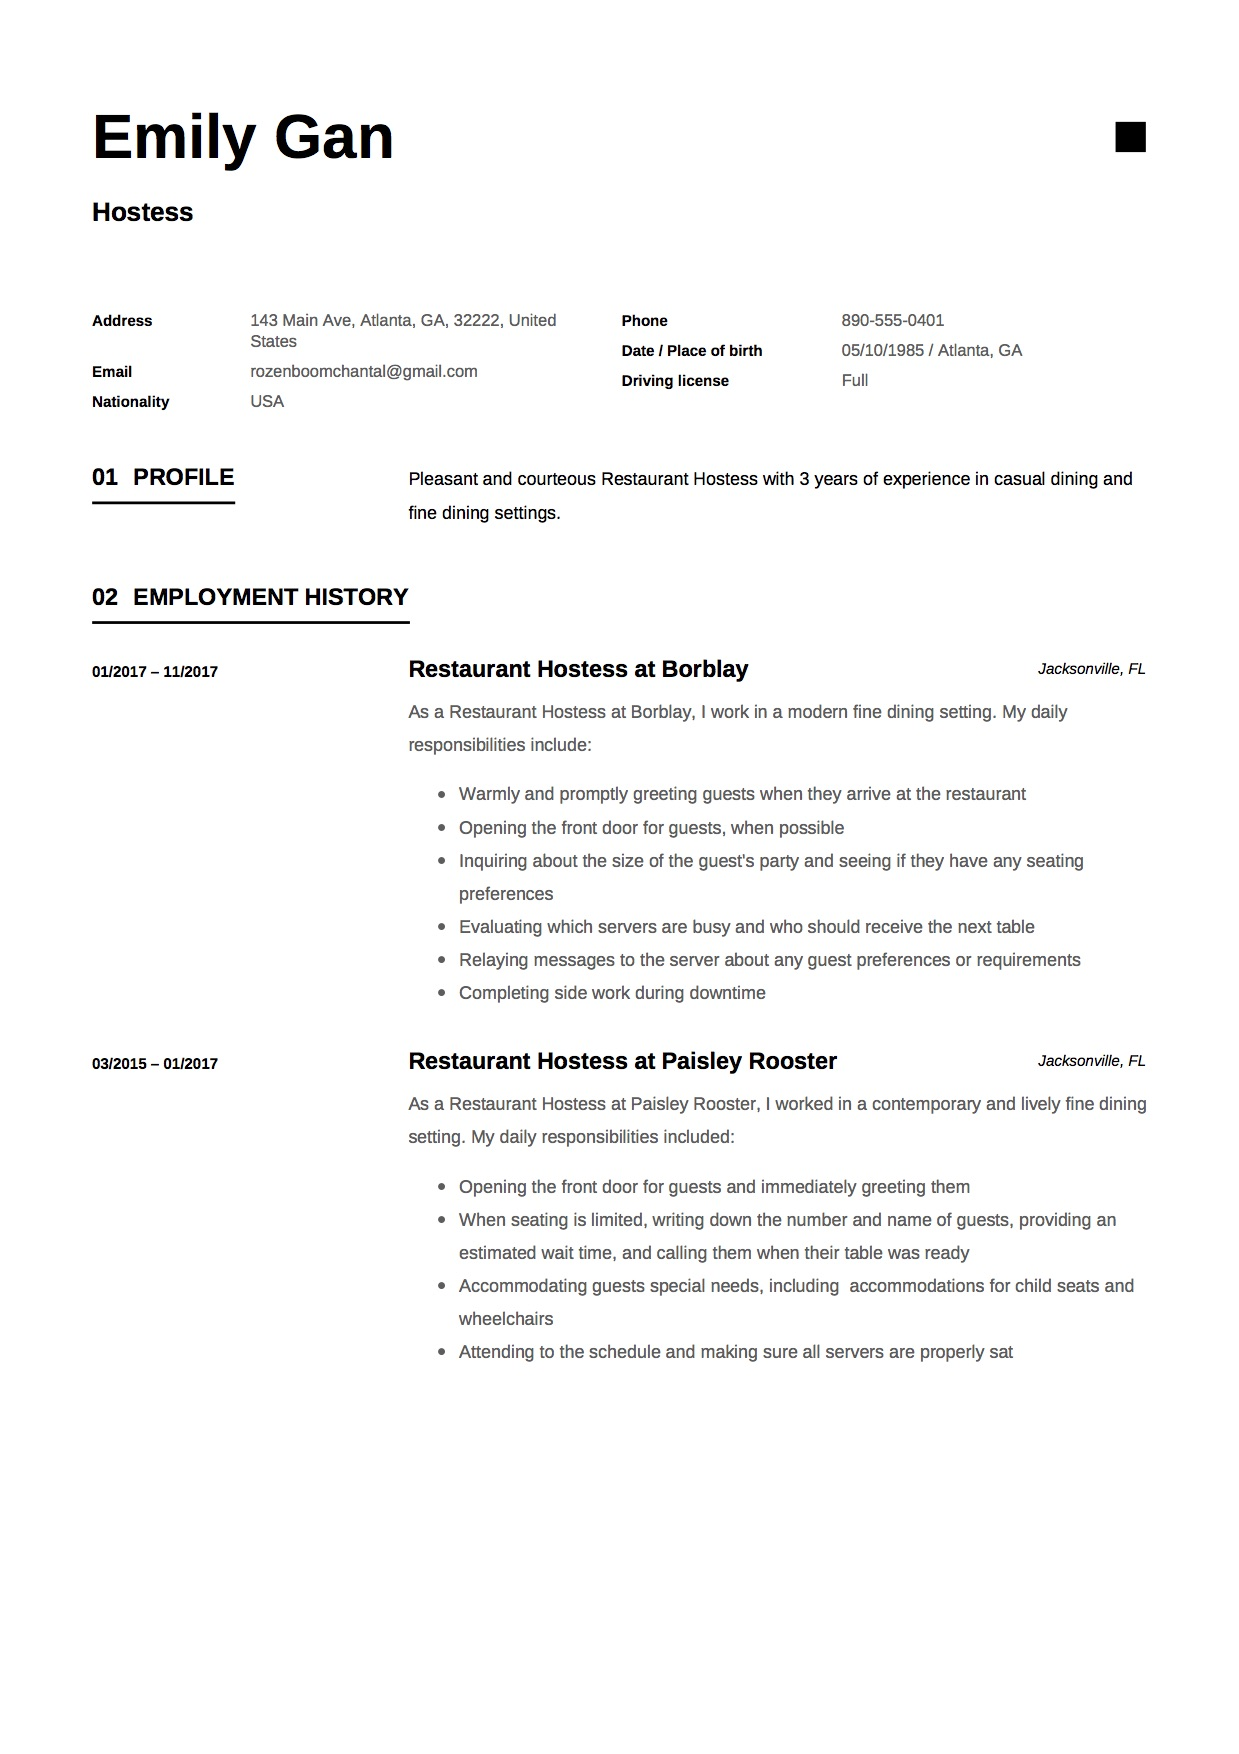 hostess resume guide examples free downloads for restaurant emily gan template sample Resume Resume Examples For Restaurant Hostess